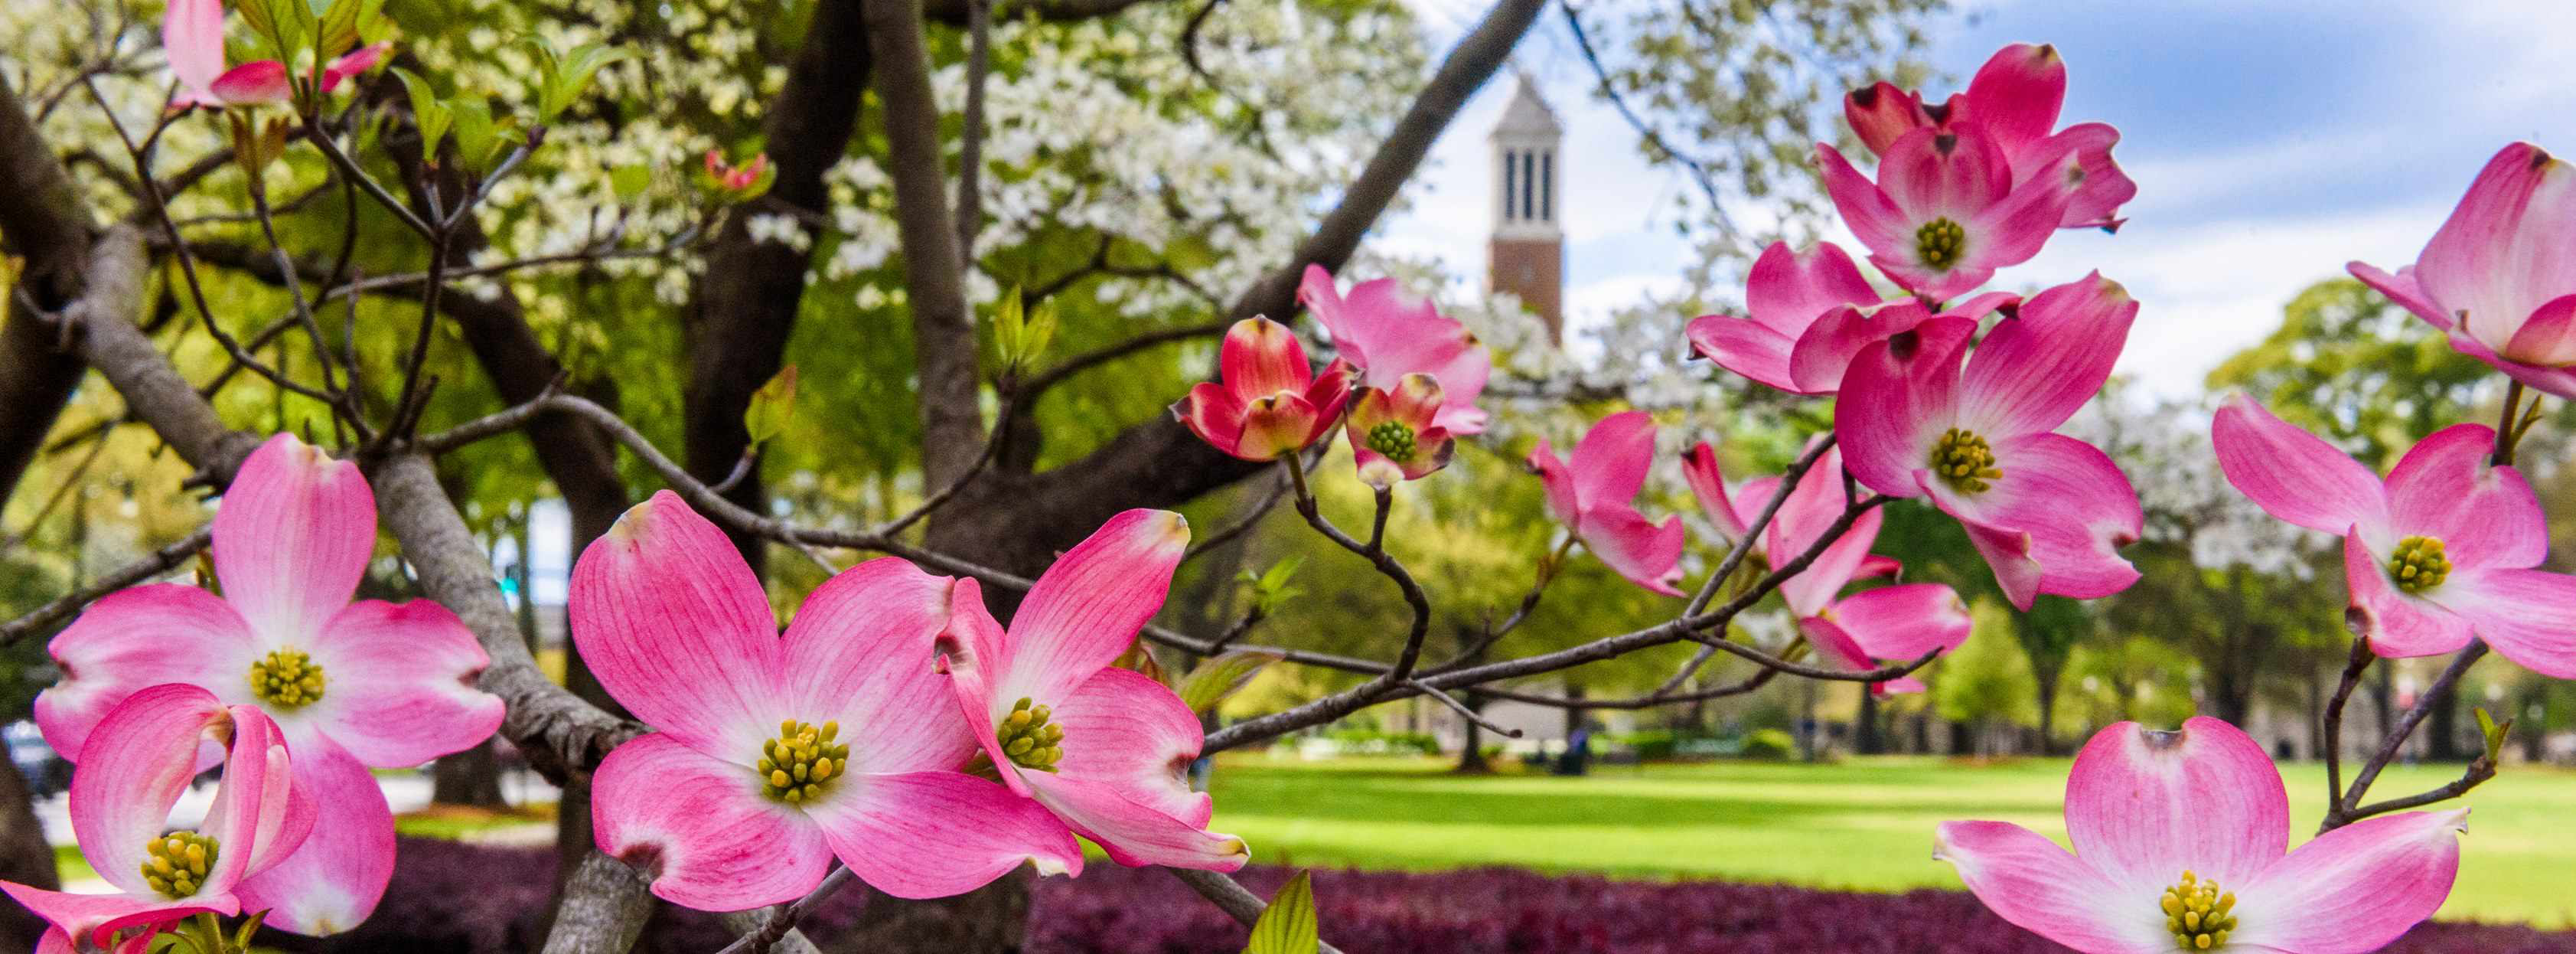 Pink dogwood tree blossoms on the University of Alabama campus